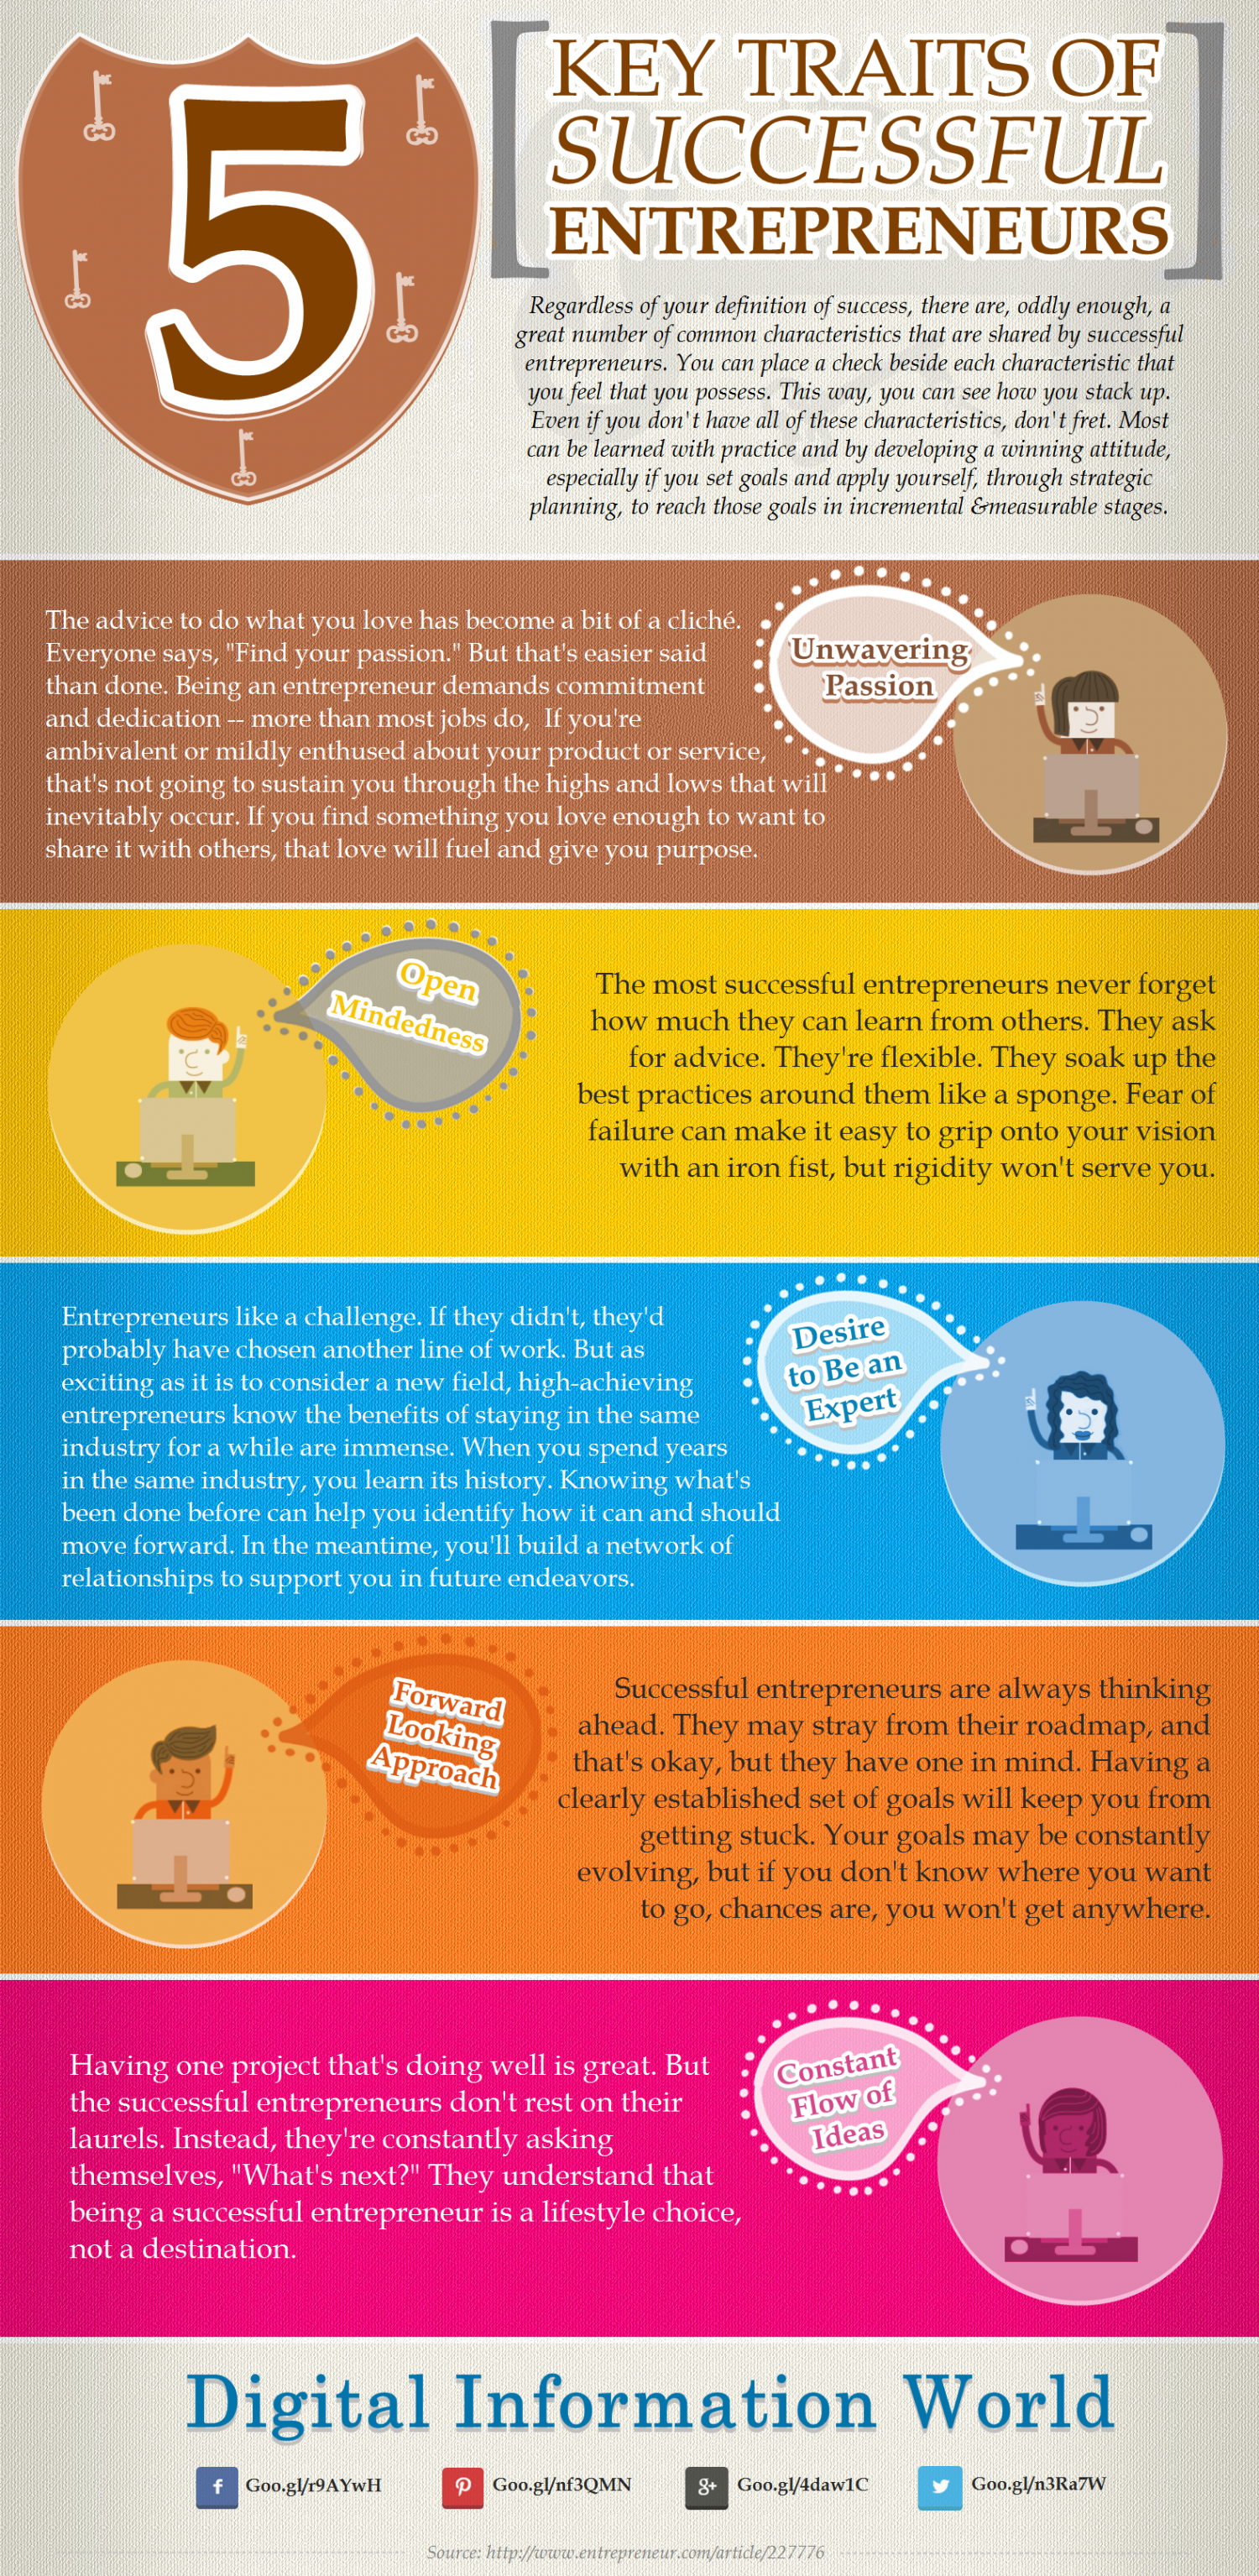 5 Key Traits Of Successful Entrepreneurs Infographic